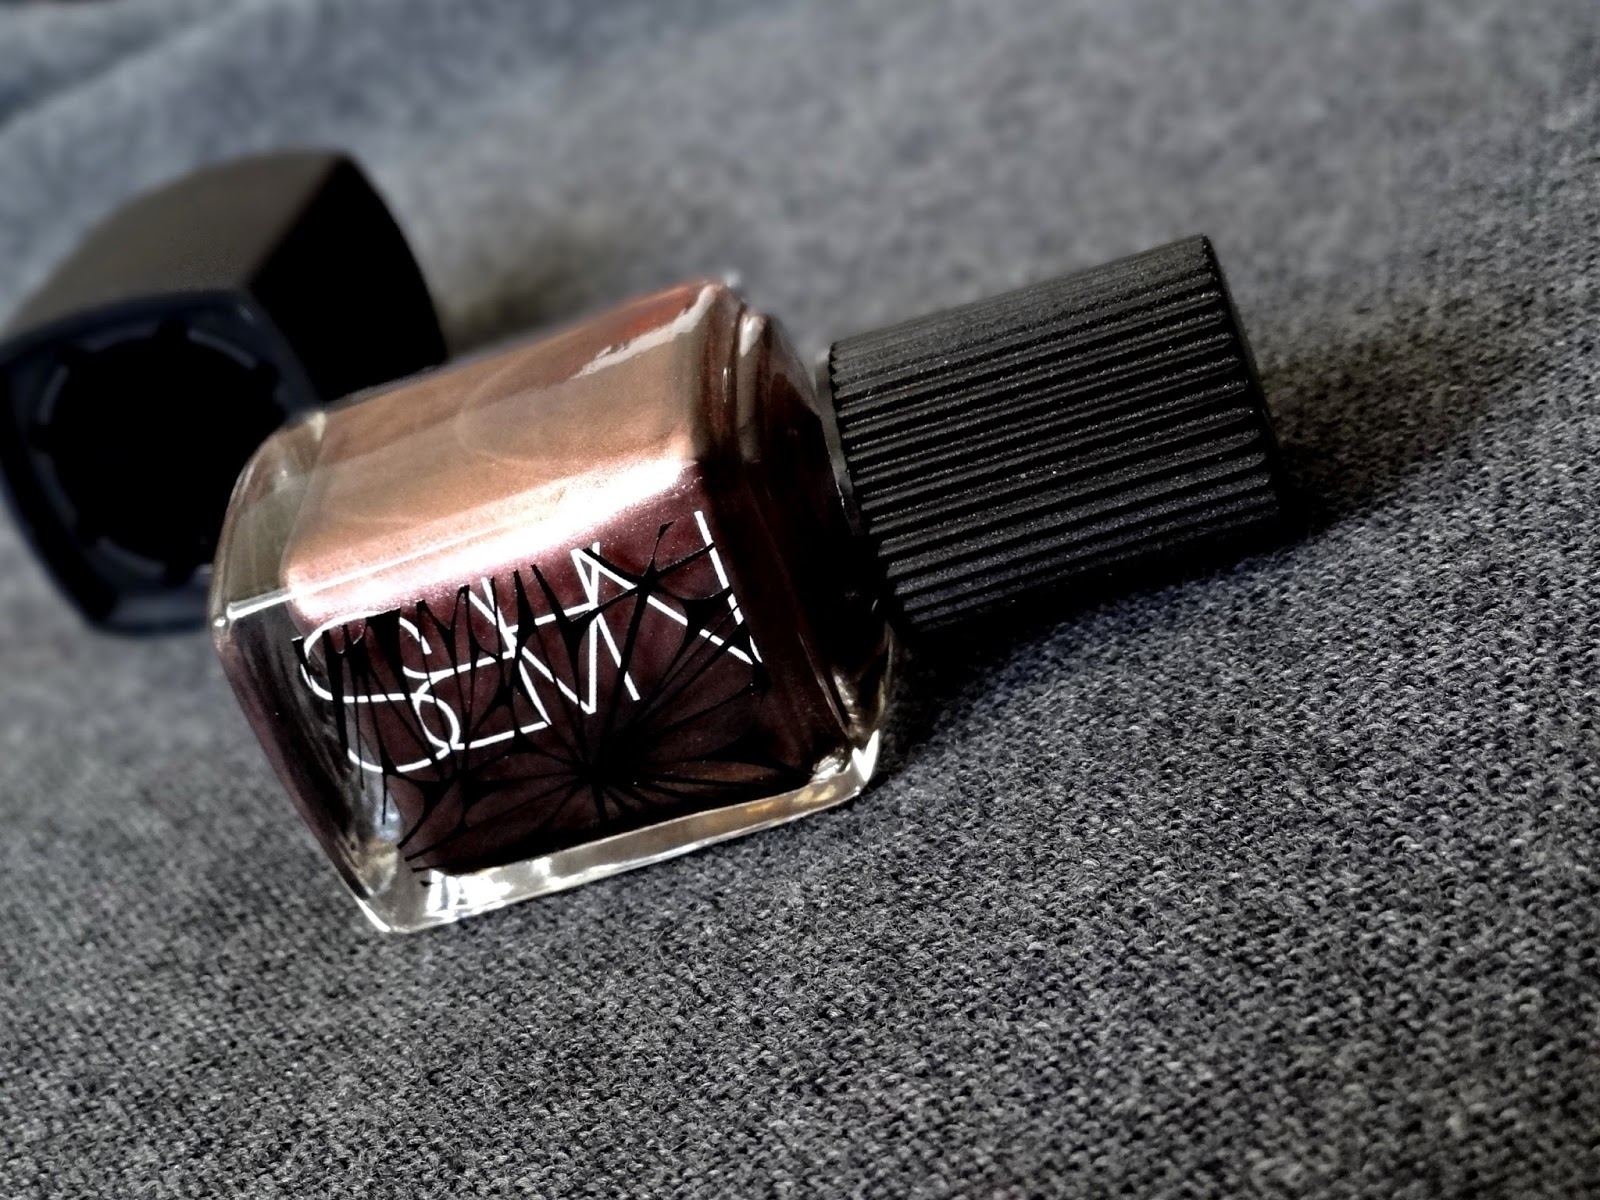 NARS Laced with Edge Holiday Collection Sherwood Nail Polish Review, Photos & Swatches